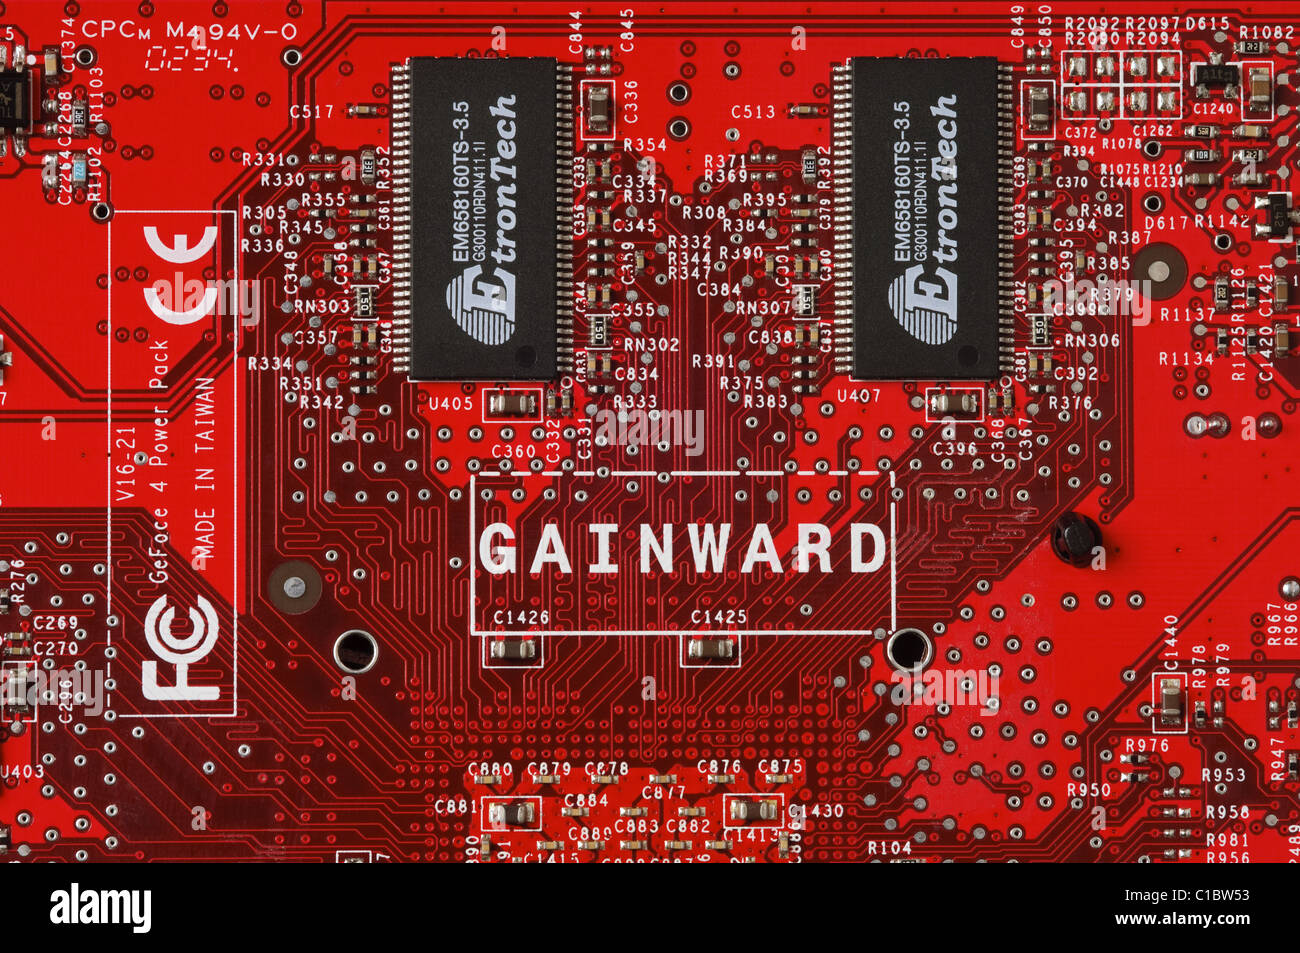 Twin Etron Tech DDR Synchronous DRAM - or SDRAM - on the printed circuit board of a Gainward graphics card Stock Photo